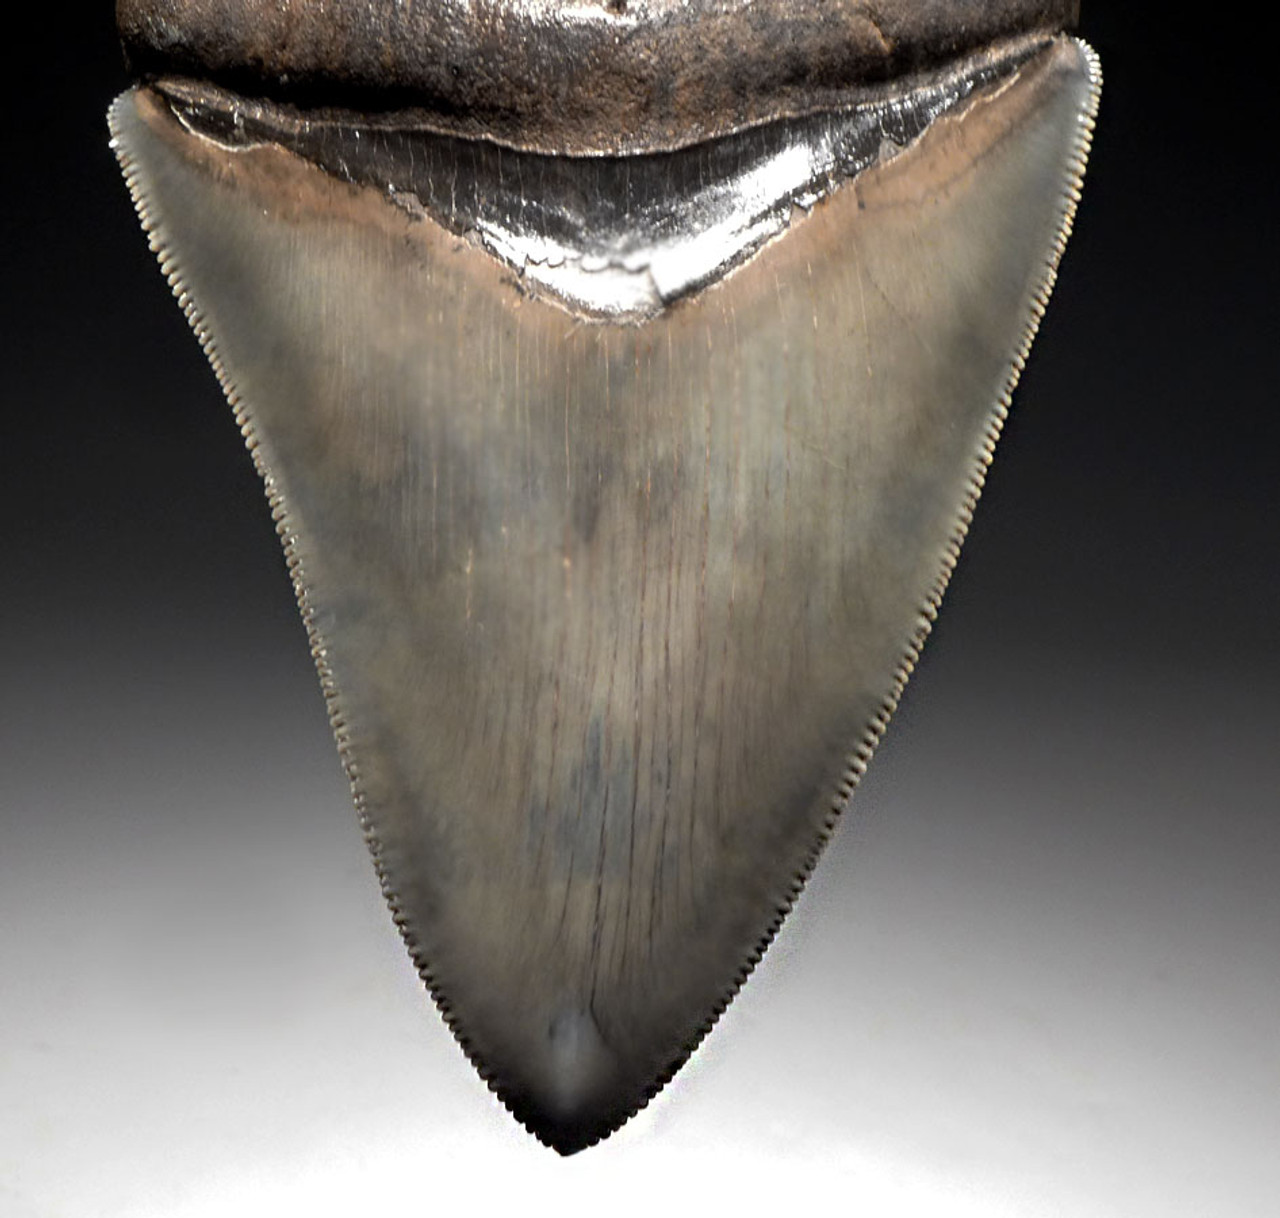 SH6-370 - INVESTMENT GRADE 4 INCH WARM BLUE-SILVER MEGALODON SHARK TOOTH